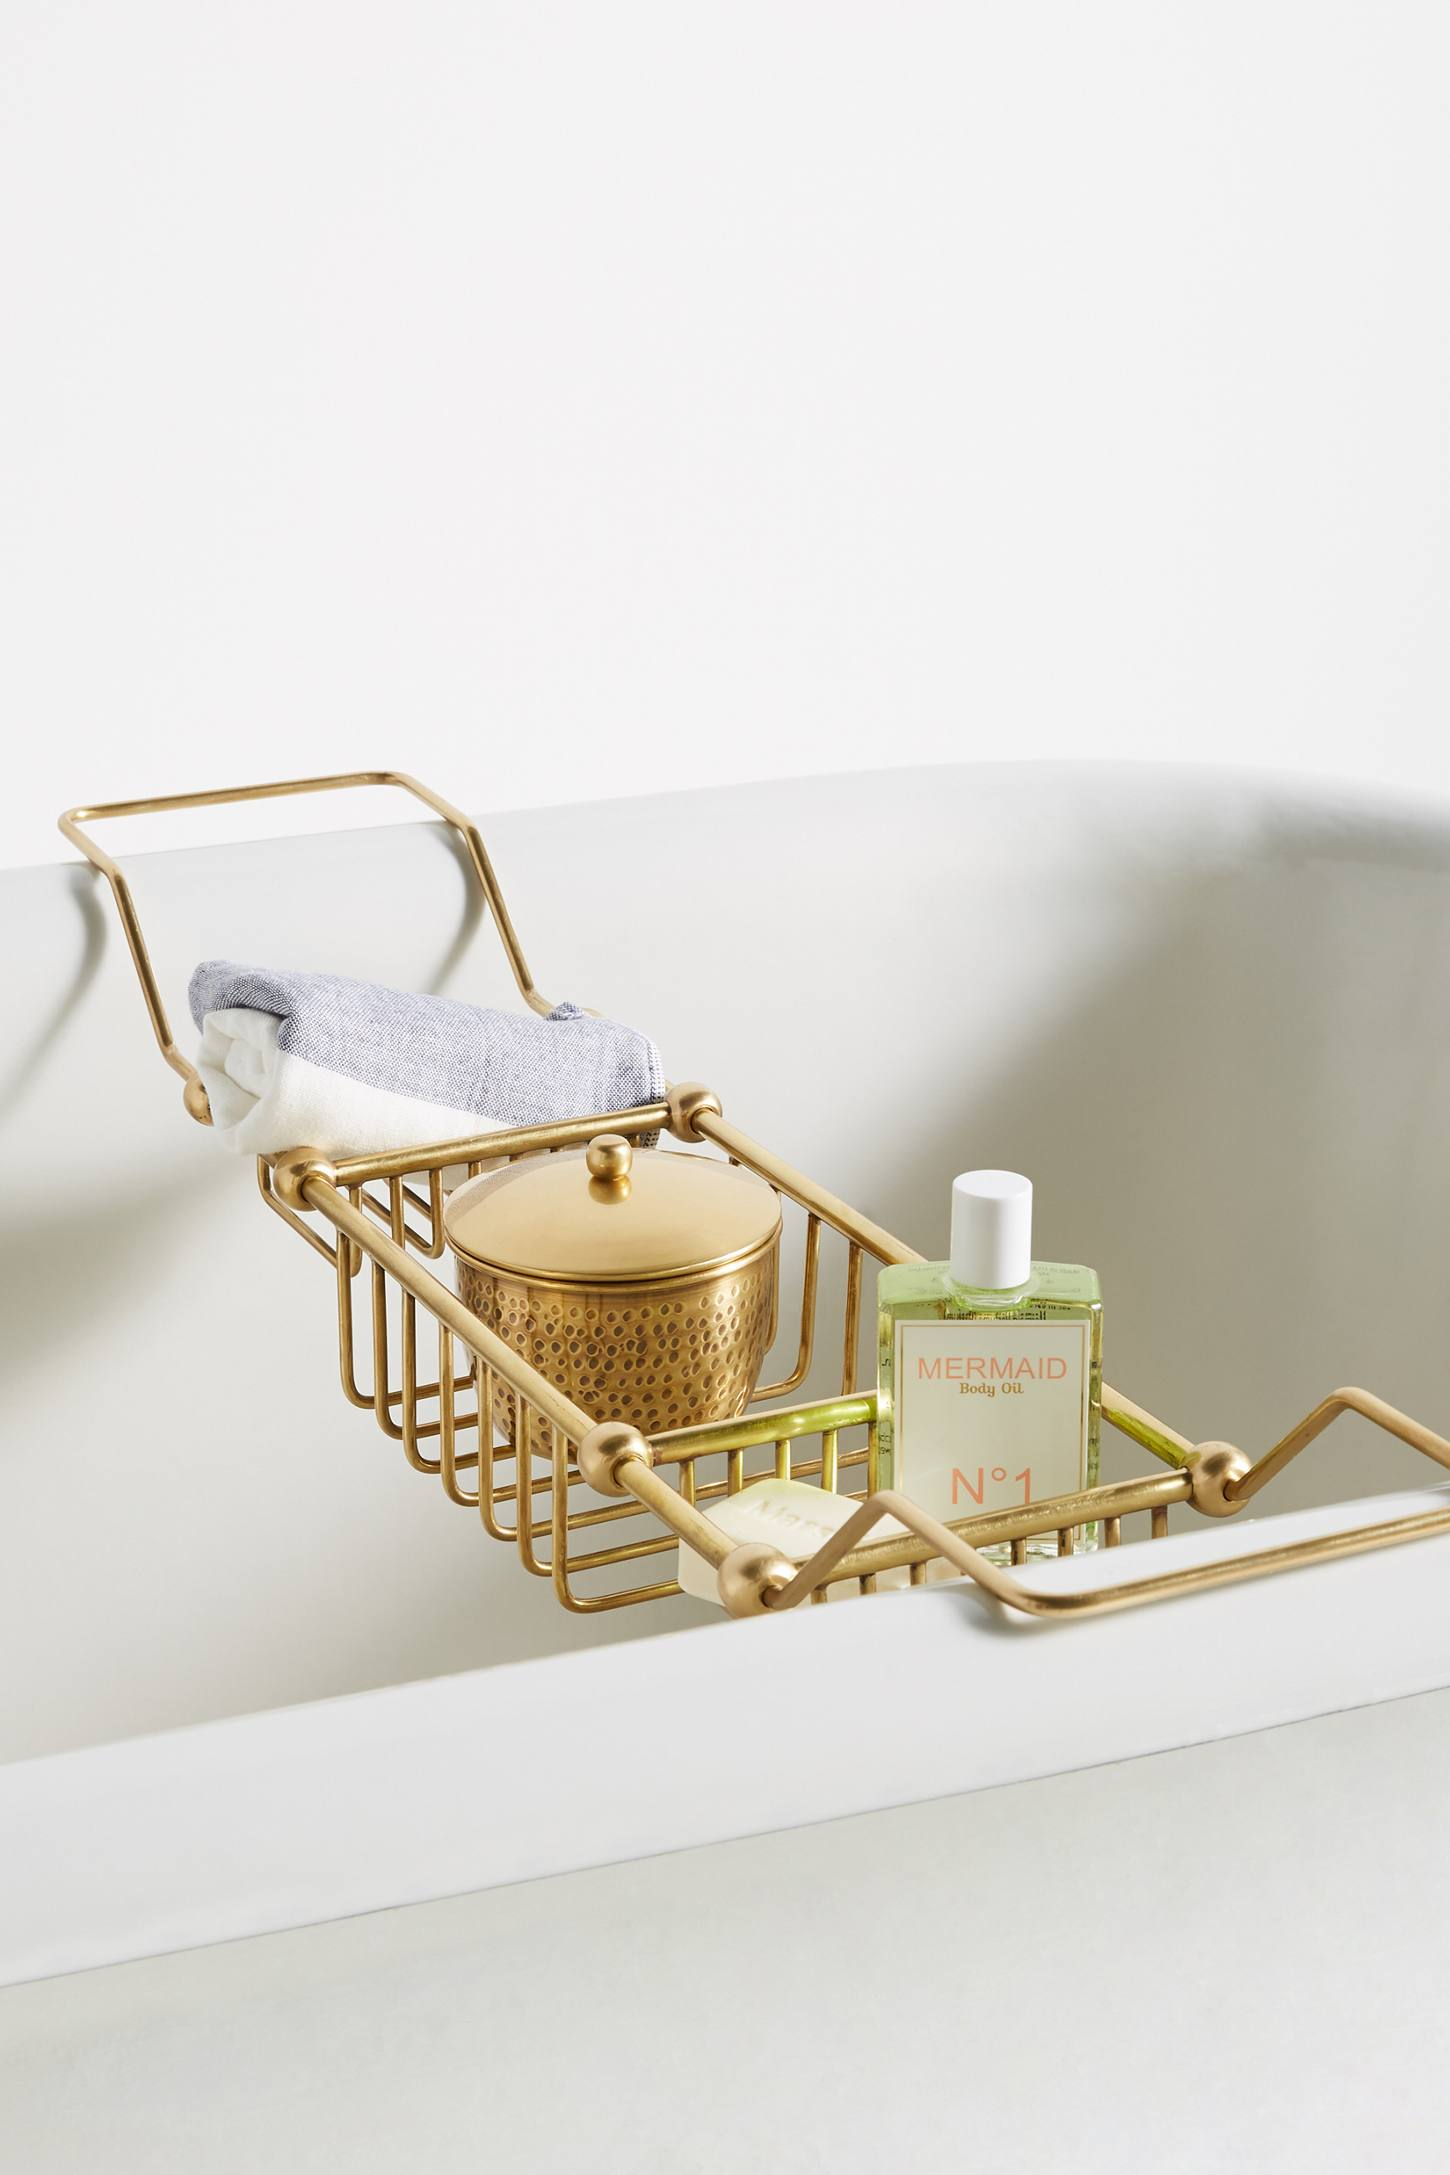 Best Bath Caddy Tray Real Women Reviews